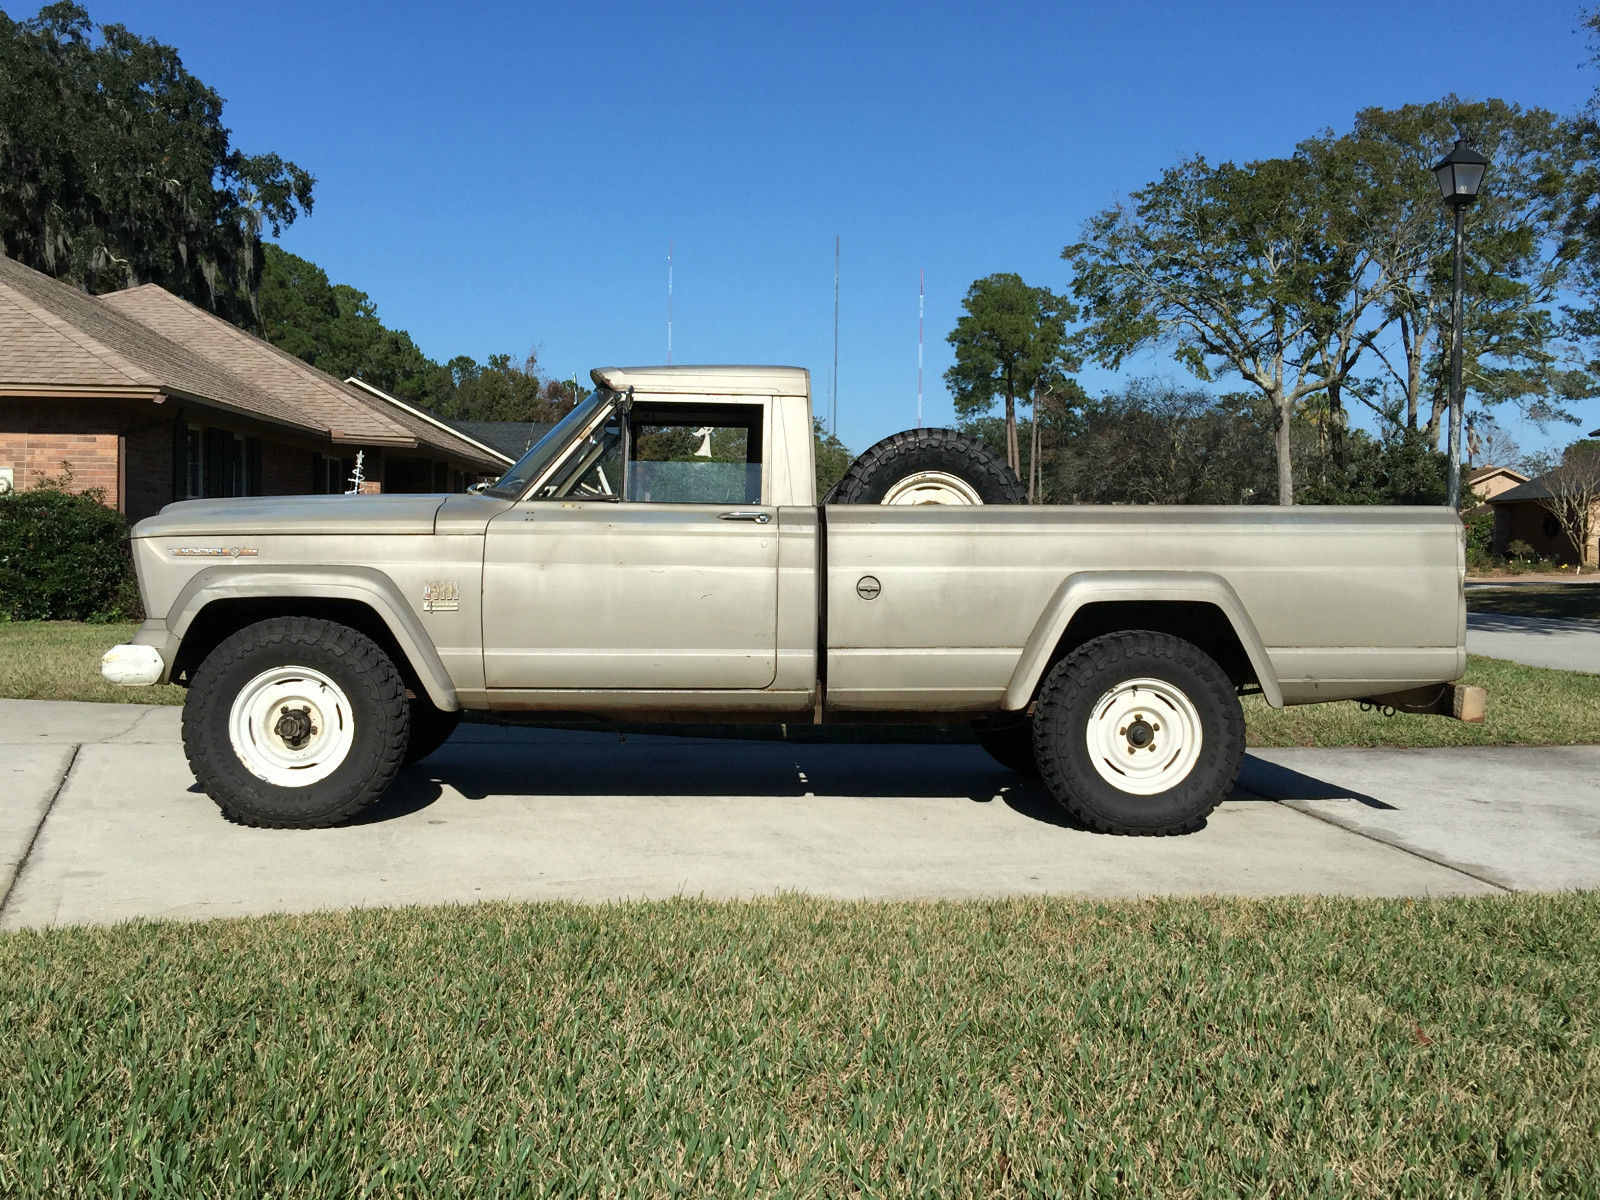 1967 jeep gladiator j10 j3000 pickup truck barn find for sale in jacksonville florida united. Black Bedroom Furniture Sets. Home Design Ideas